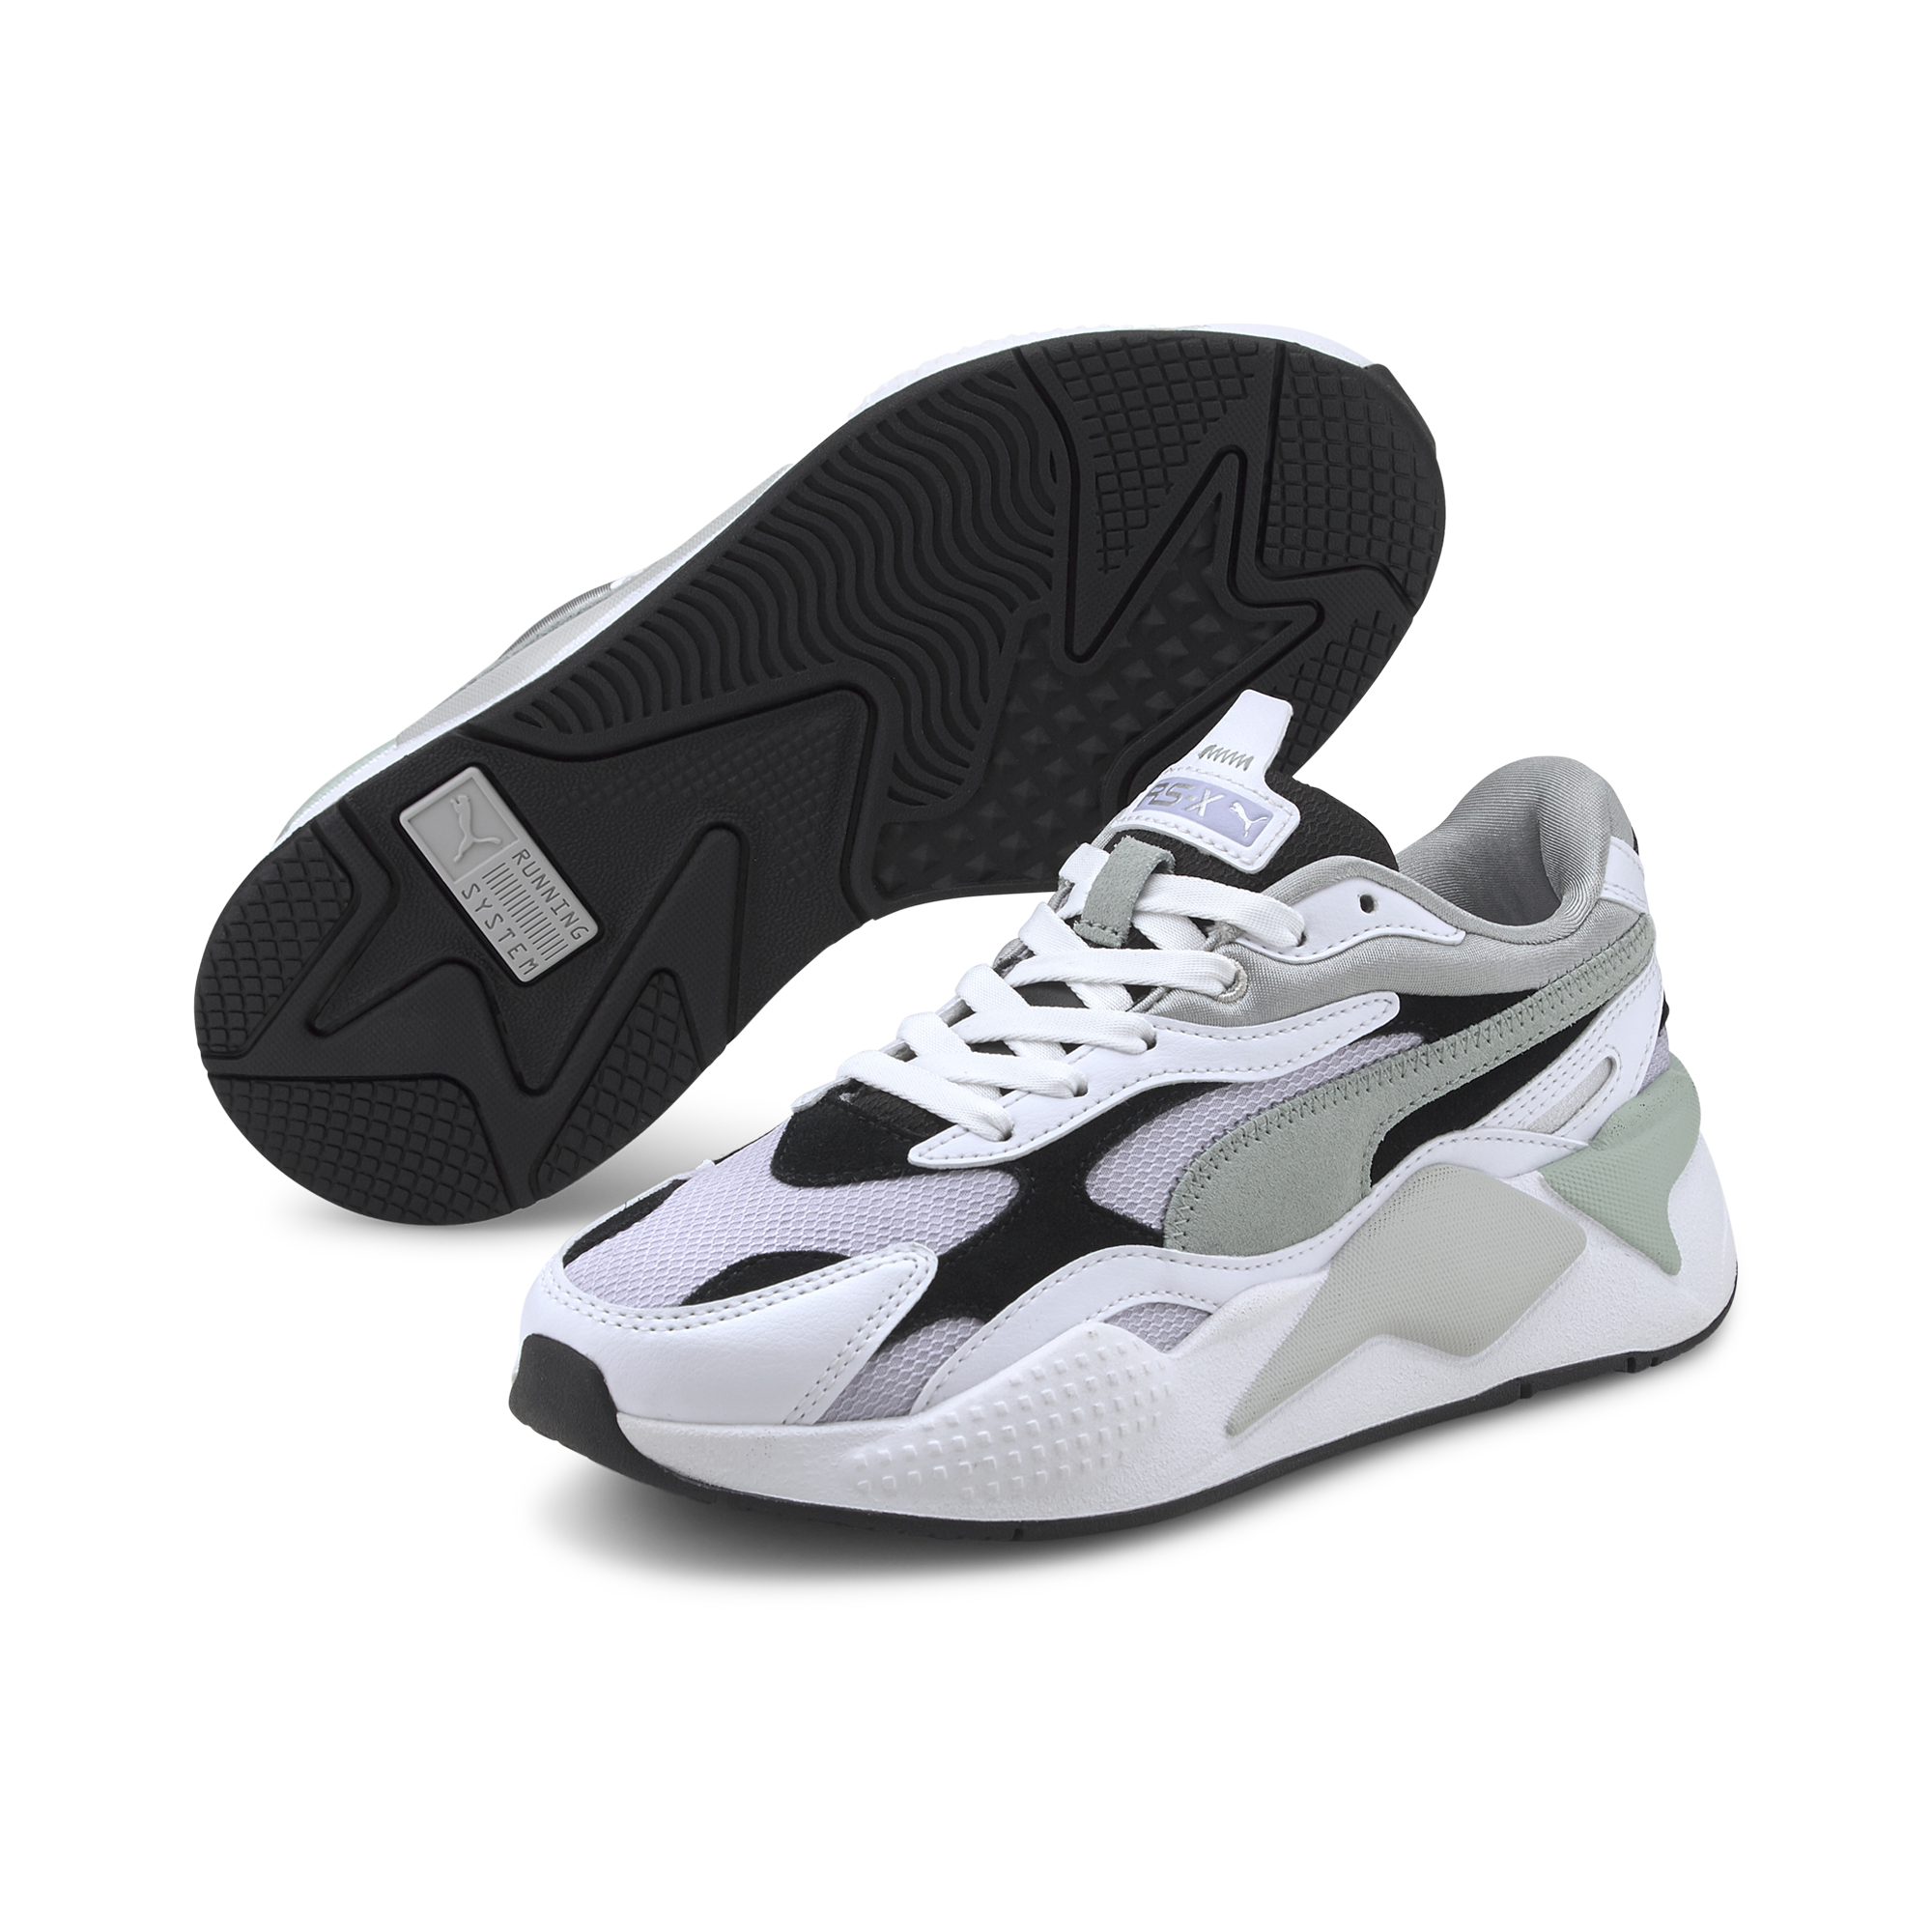 Puma RS-X3 Layers sneakers